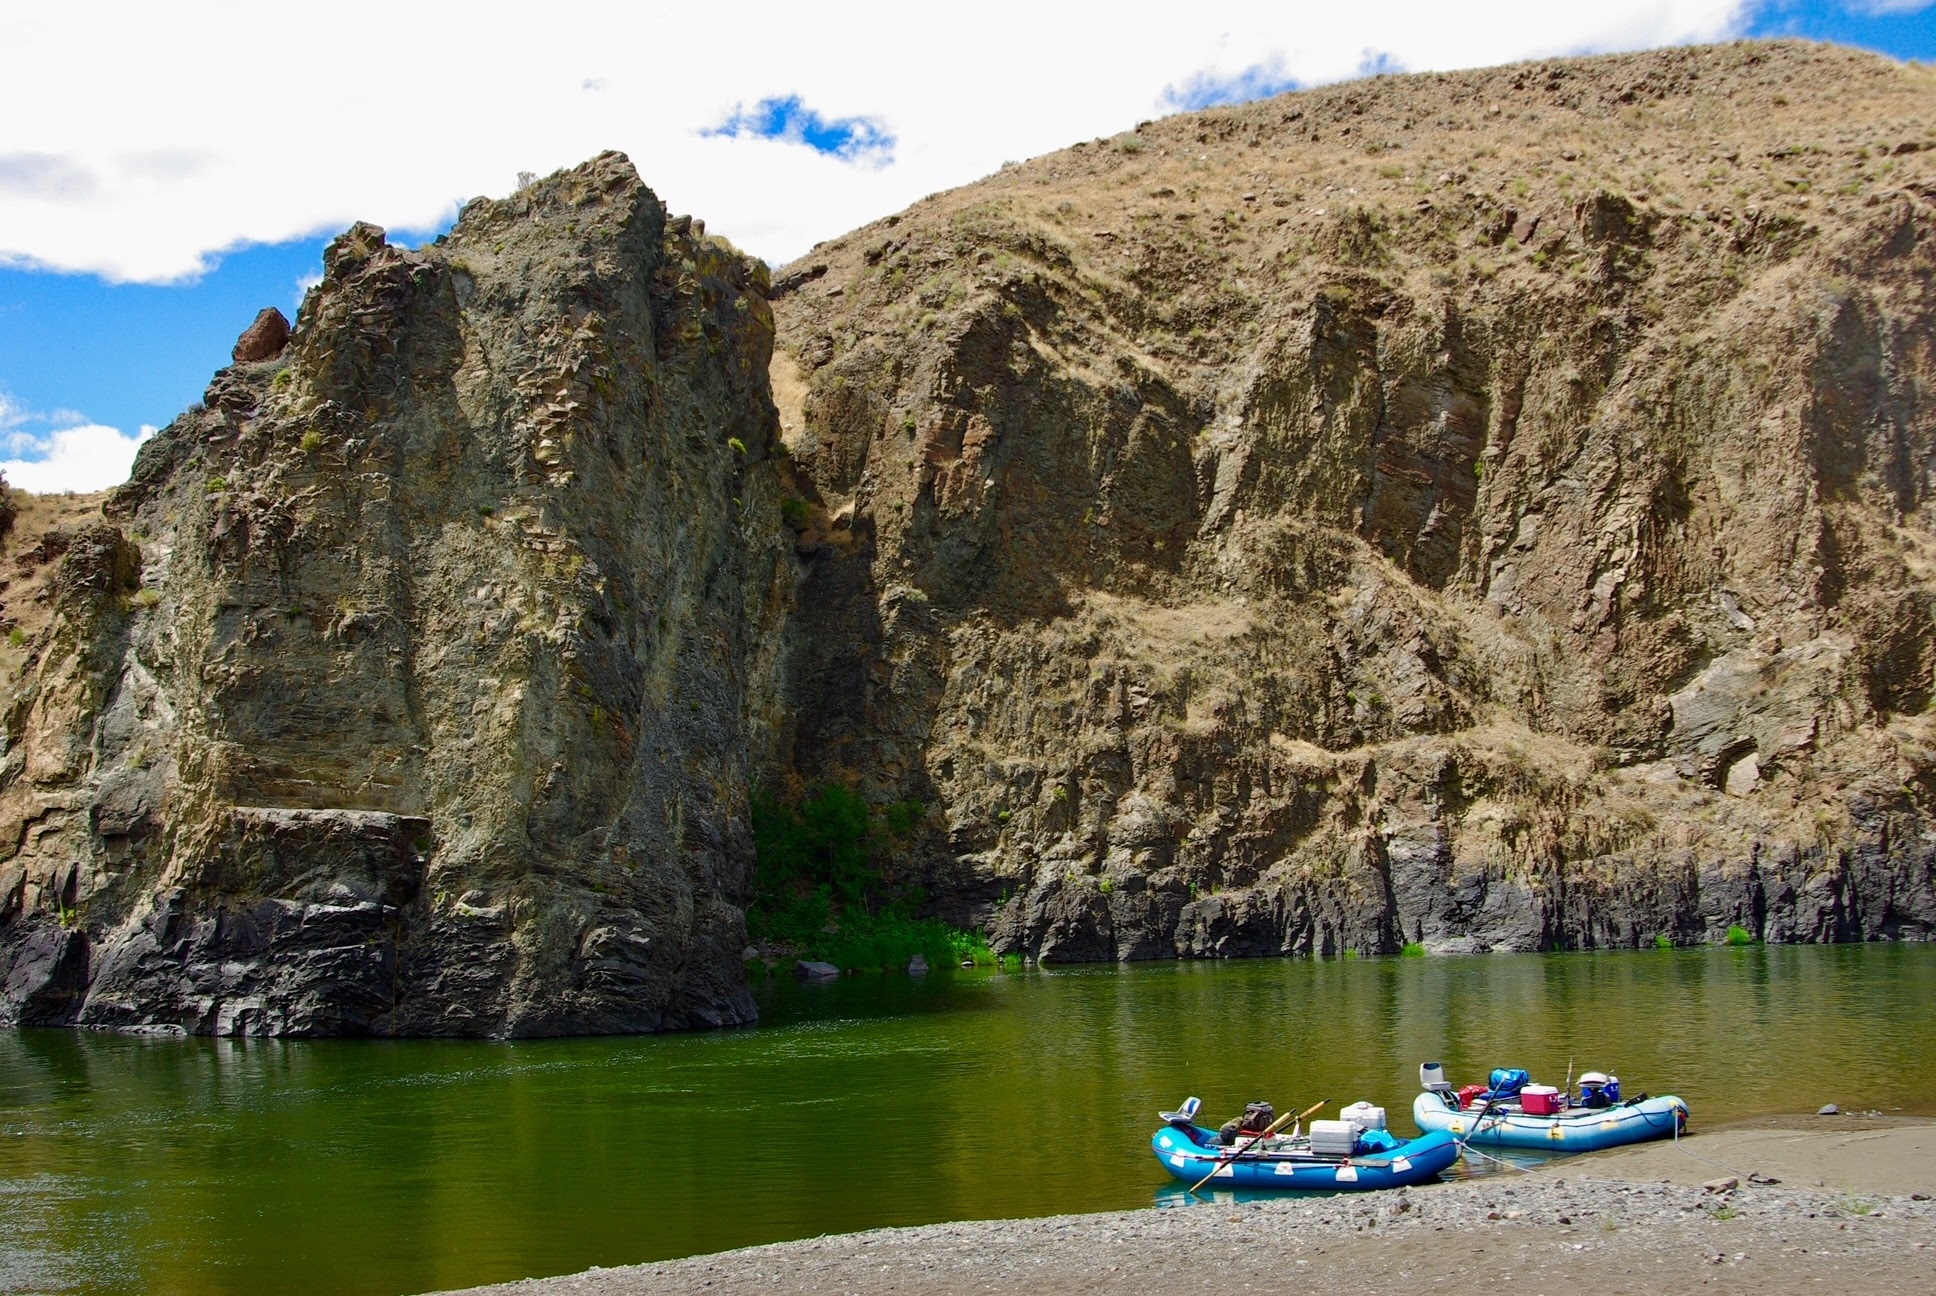 Rafting the John Day River